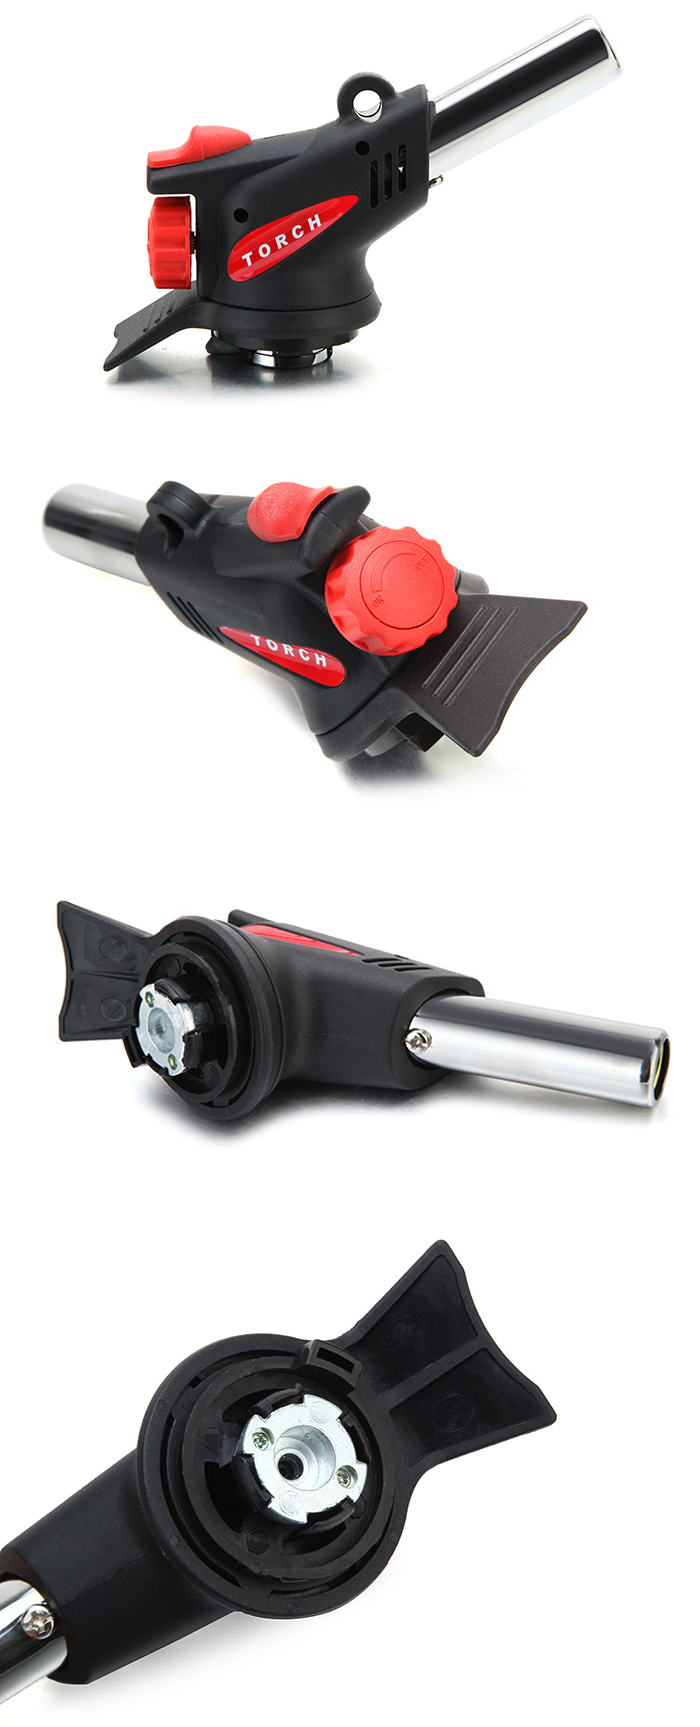 360 Degree Portable Gas Torch Flamethrower Burner Butane Gas Blow Outdoor Camping BBQ Baking Meat To